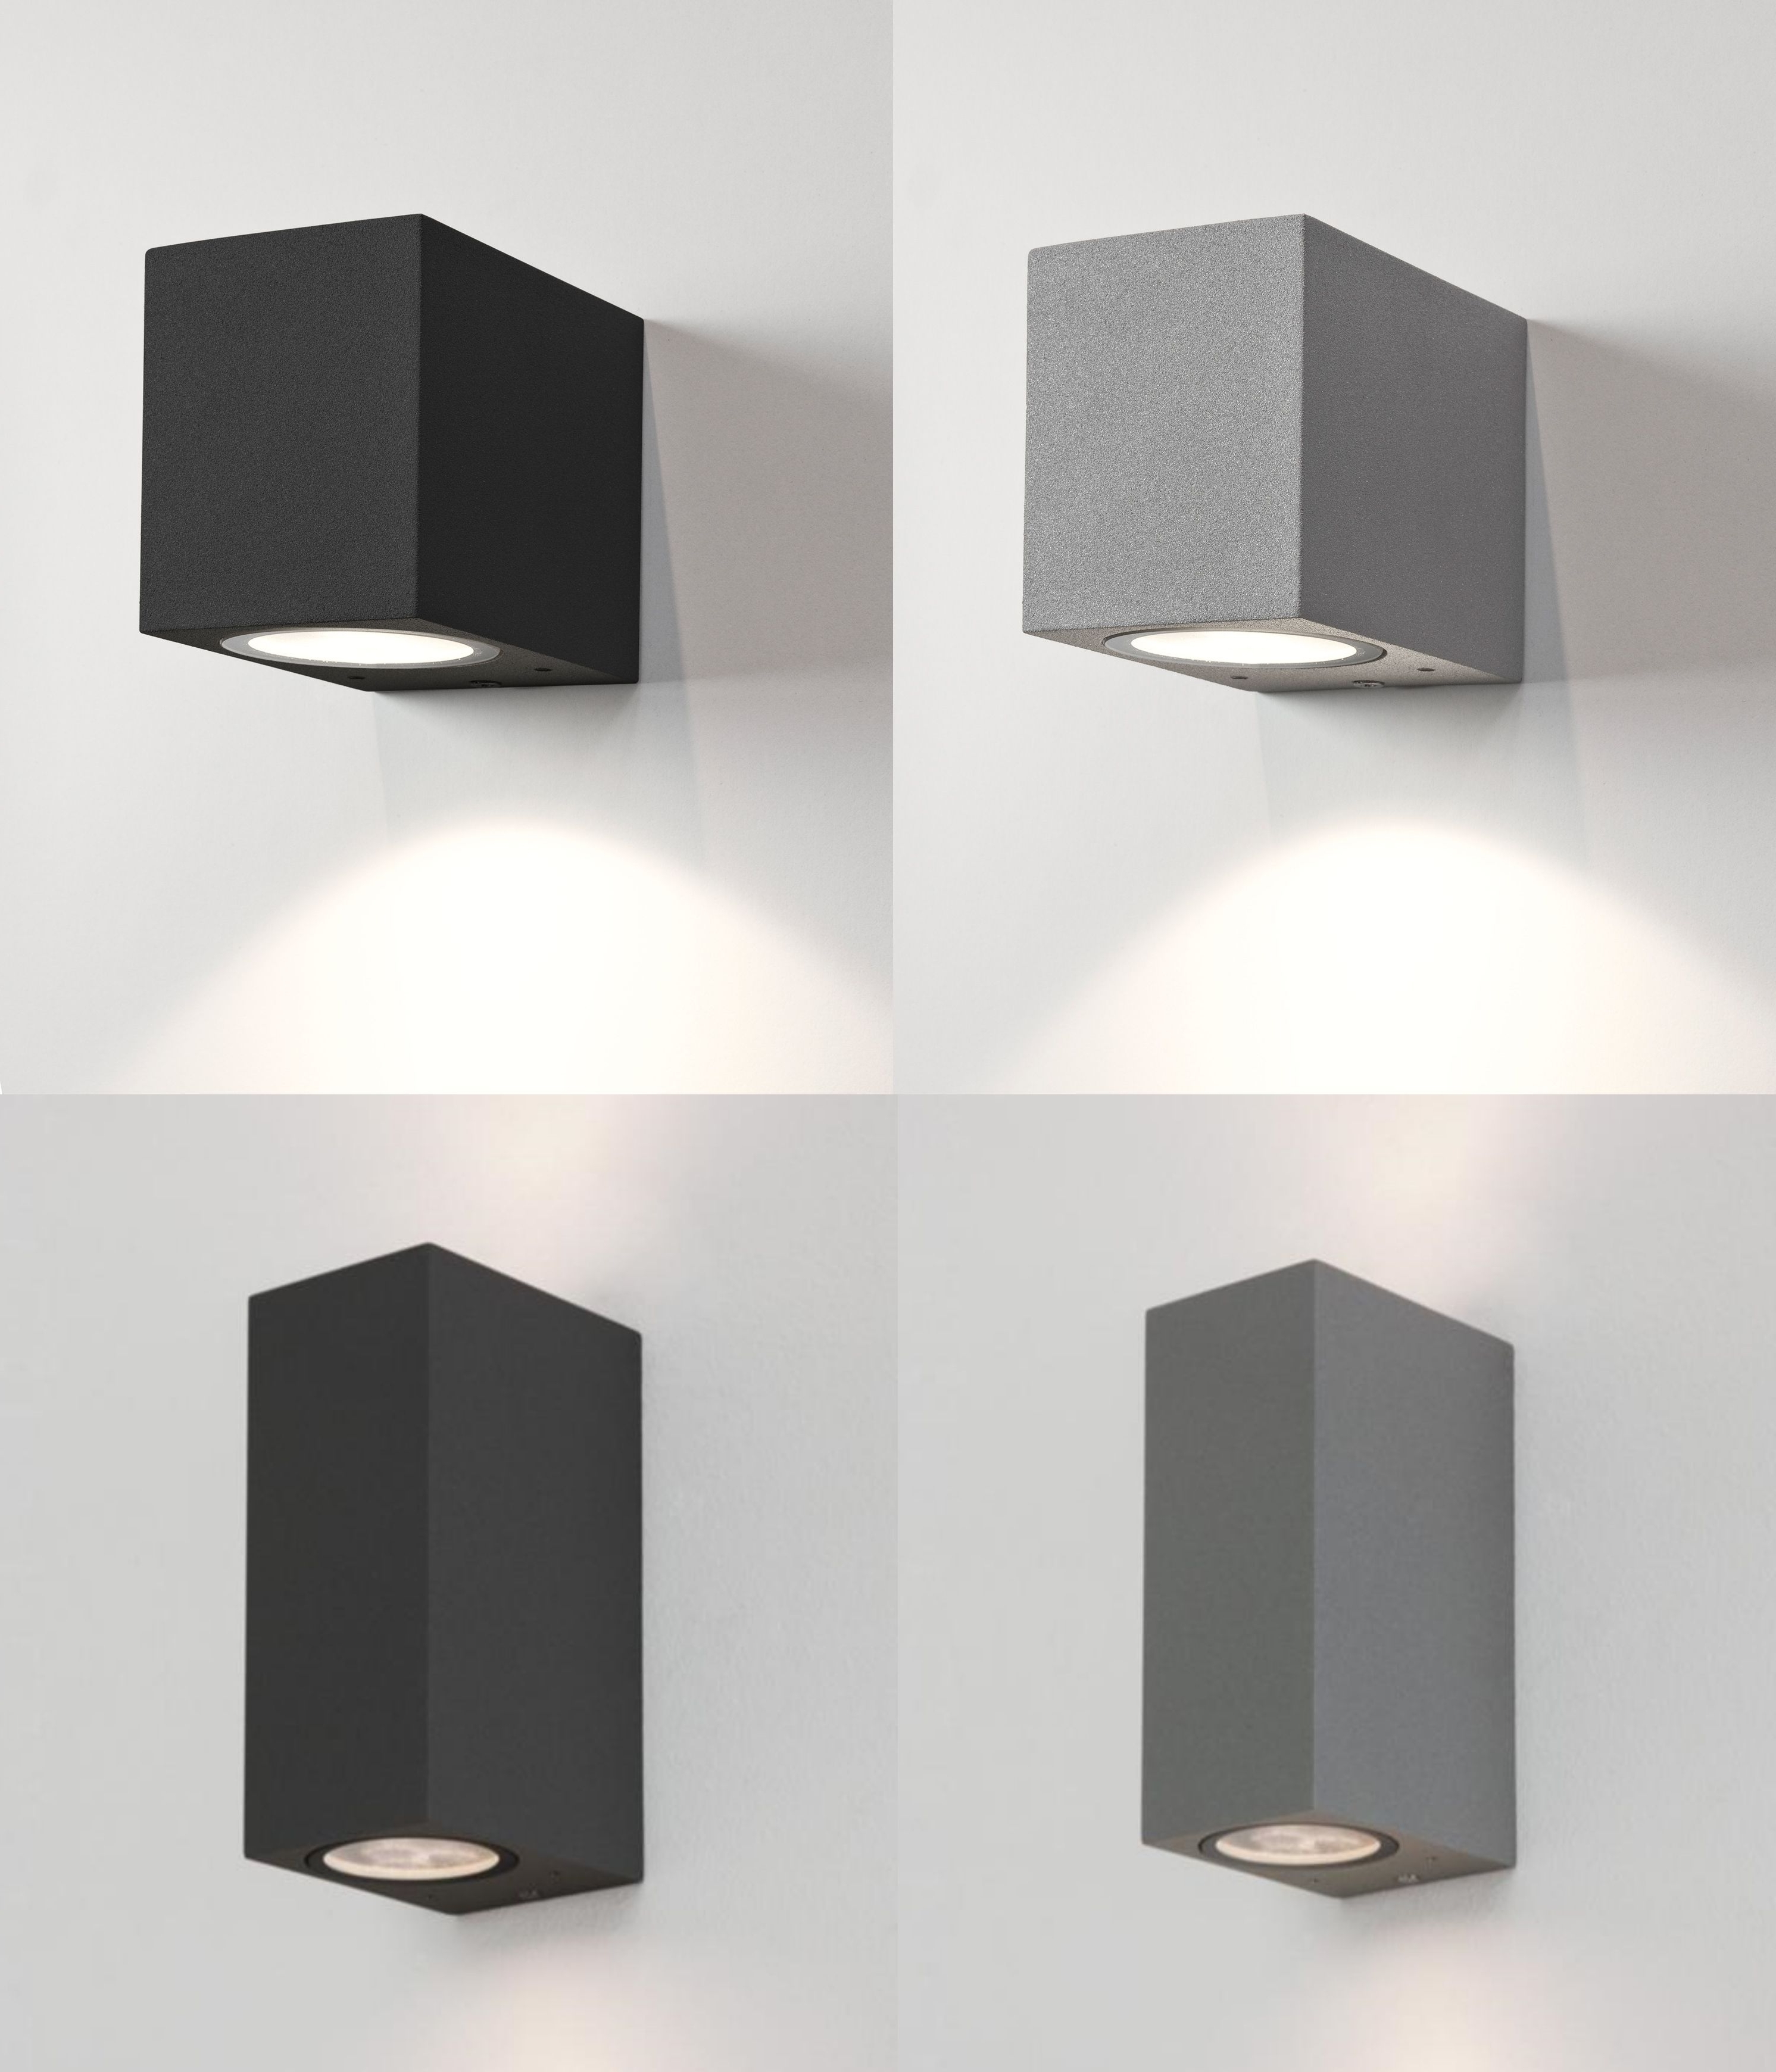 Grey Outdoor Wall Lights Intended For Recent Pinjohn Macbride On Condo Design (View 10 of 20)